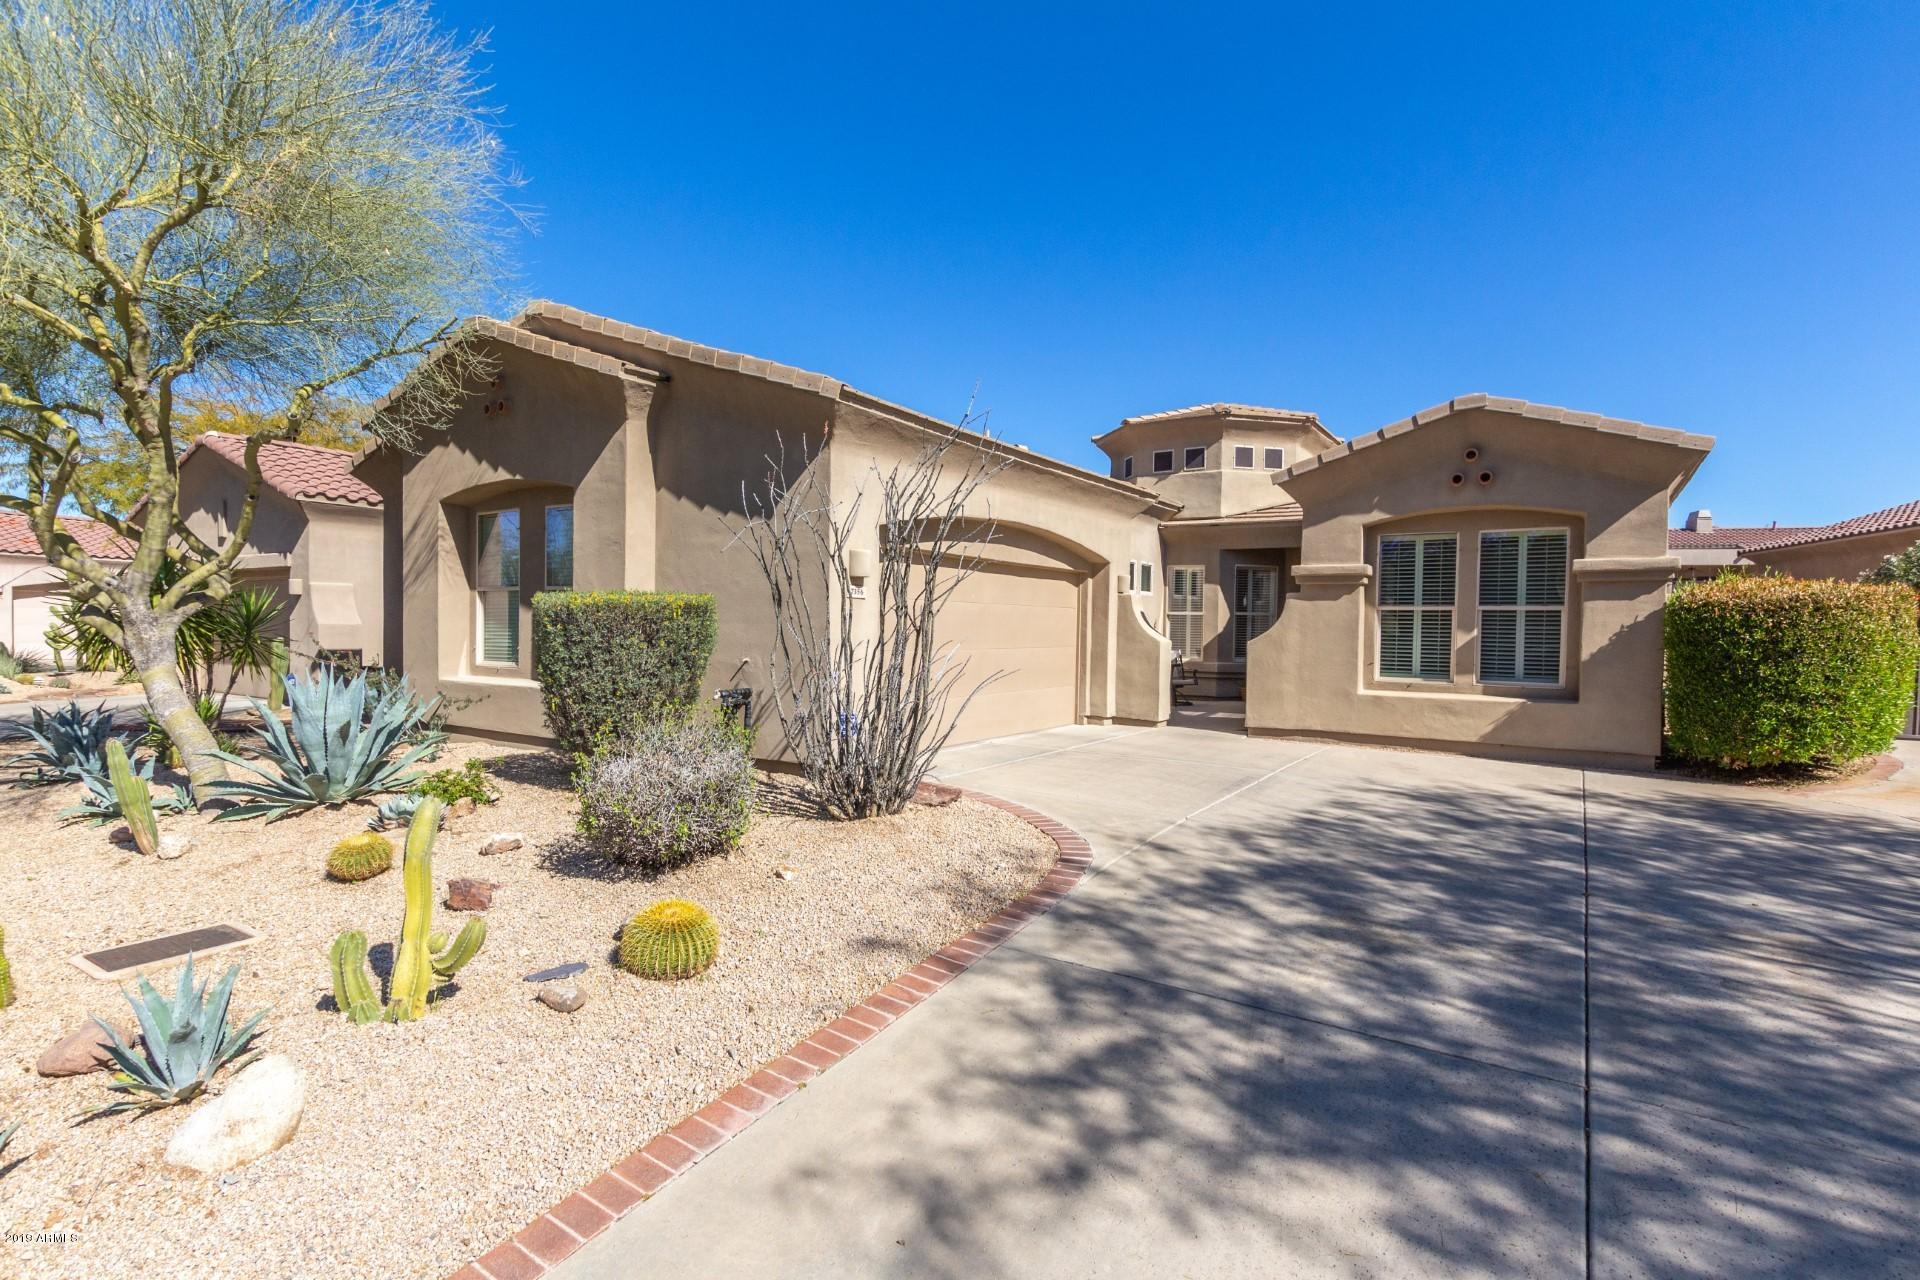 Photo of 7356 E RUSSET SKY Drive, Scottsdale, AZ 85266